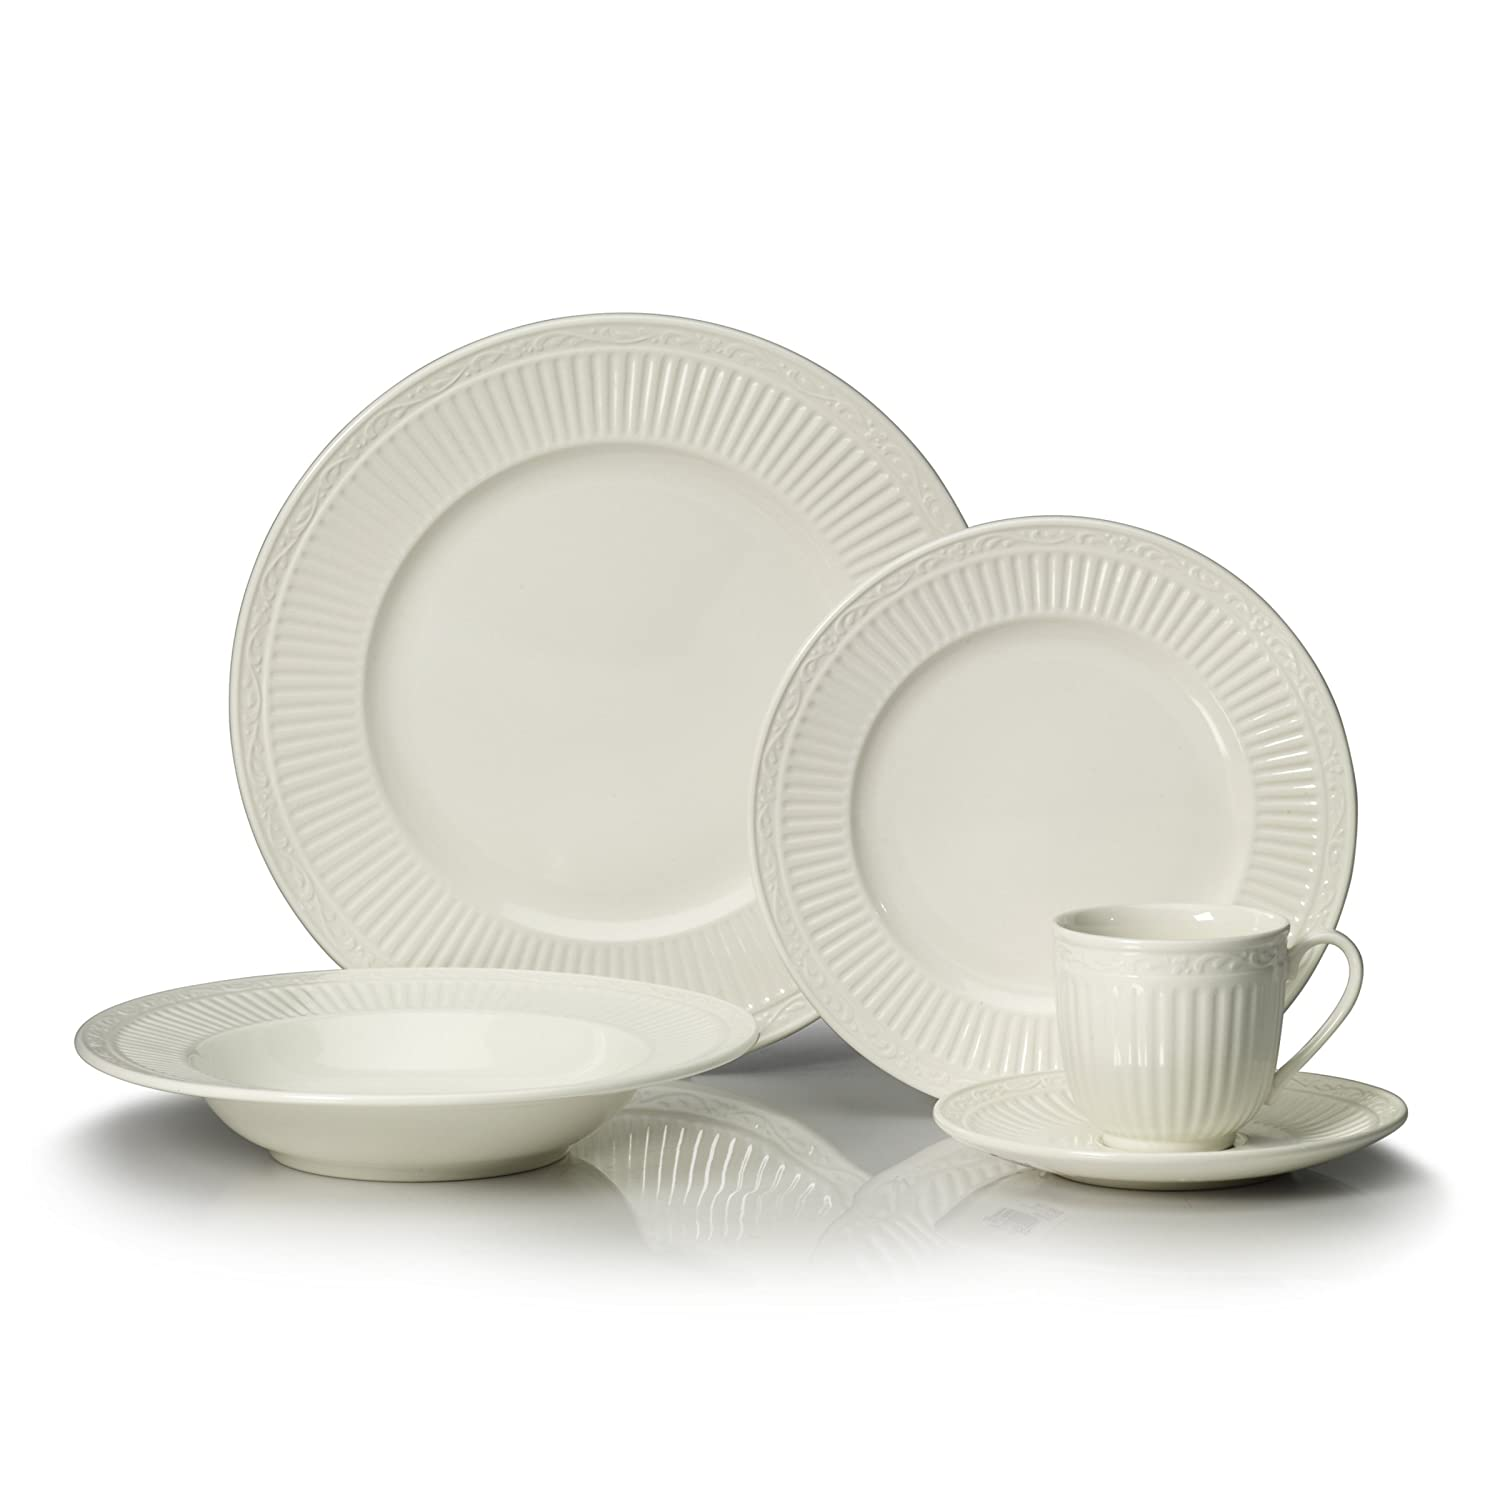 Christmas Tablescape Décor - Mikasa Italian Countryside 40-piece dinnerware set - Service for 8